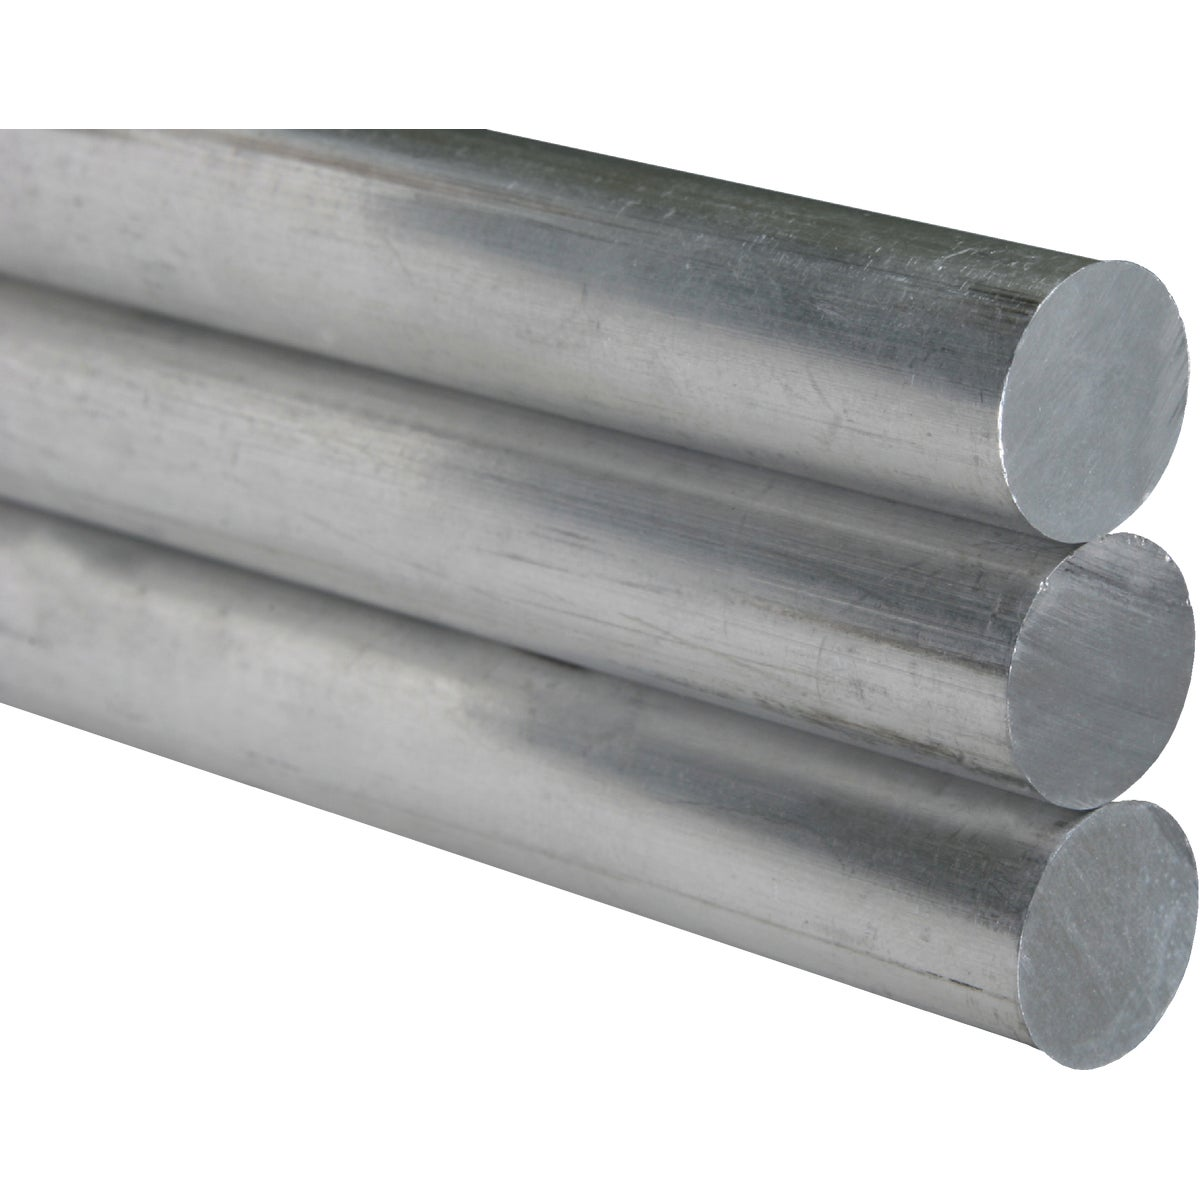 1/2X12 SOLID SS ROD